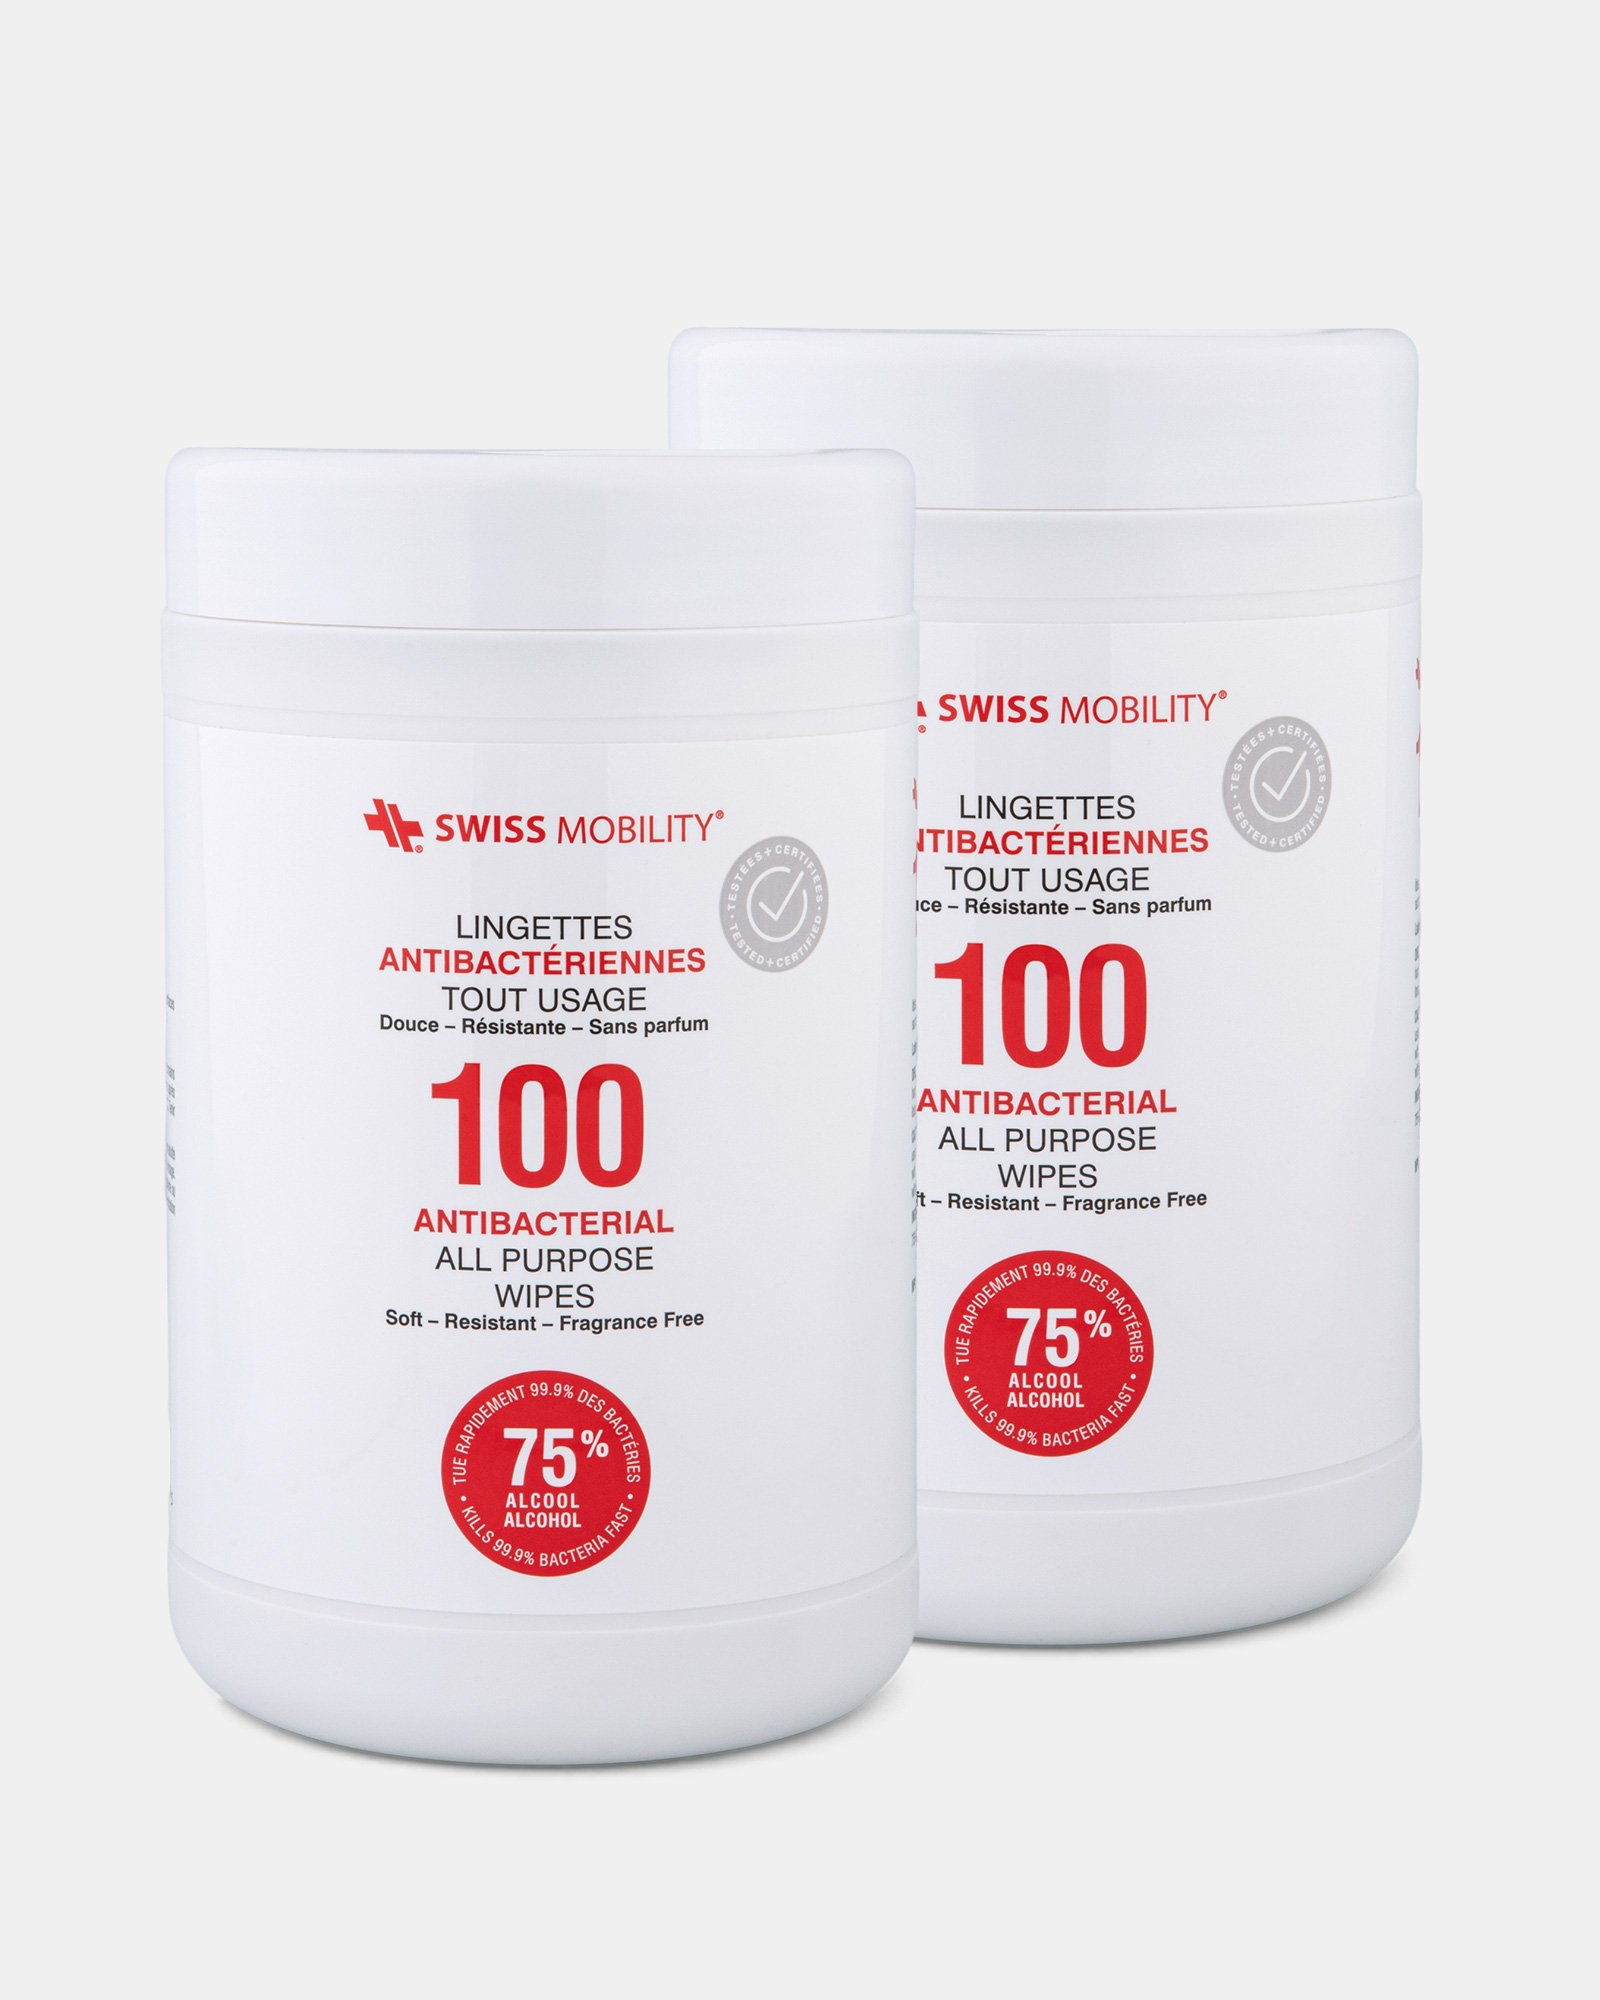 Swiss Mobility - Pack of 2 Canister of 100 Antibacterial wipes  -  75% alcohol, 25% water  - Swiss Mobility - Zoom